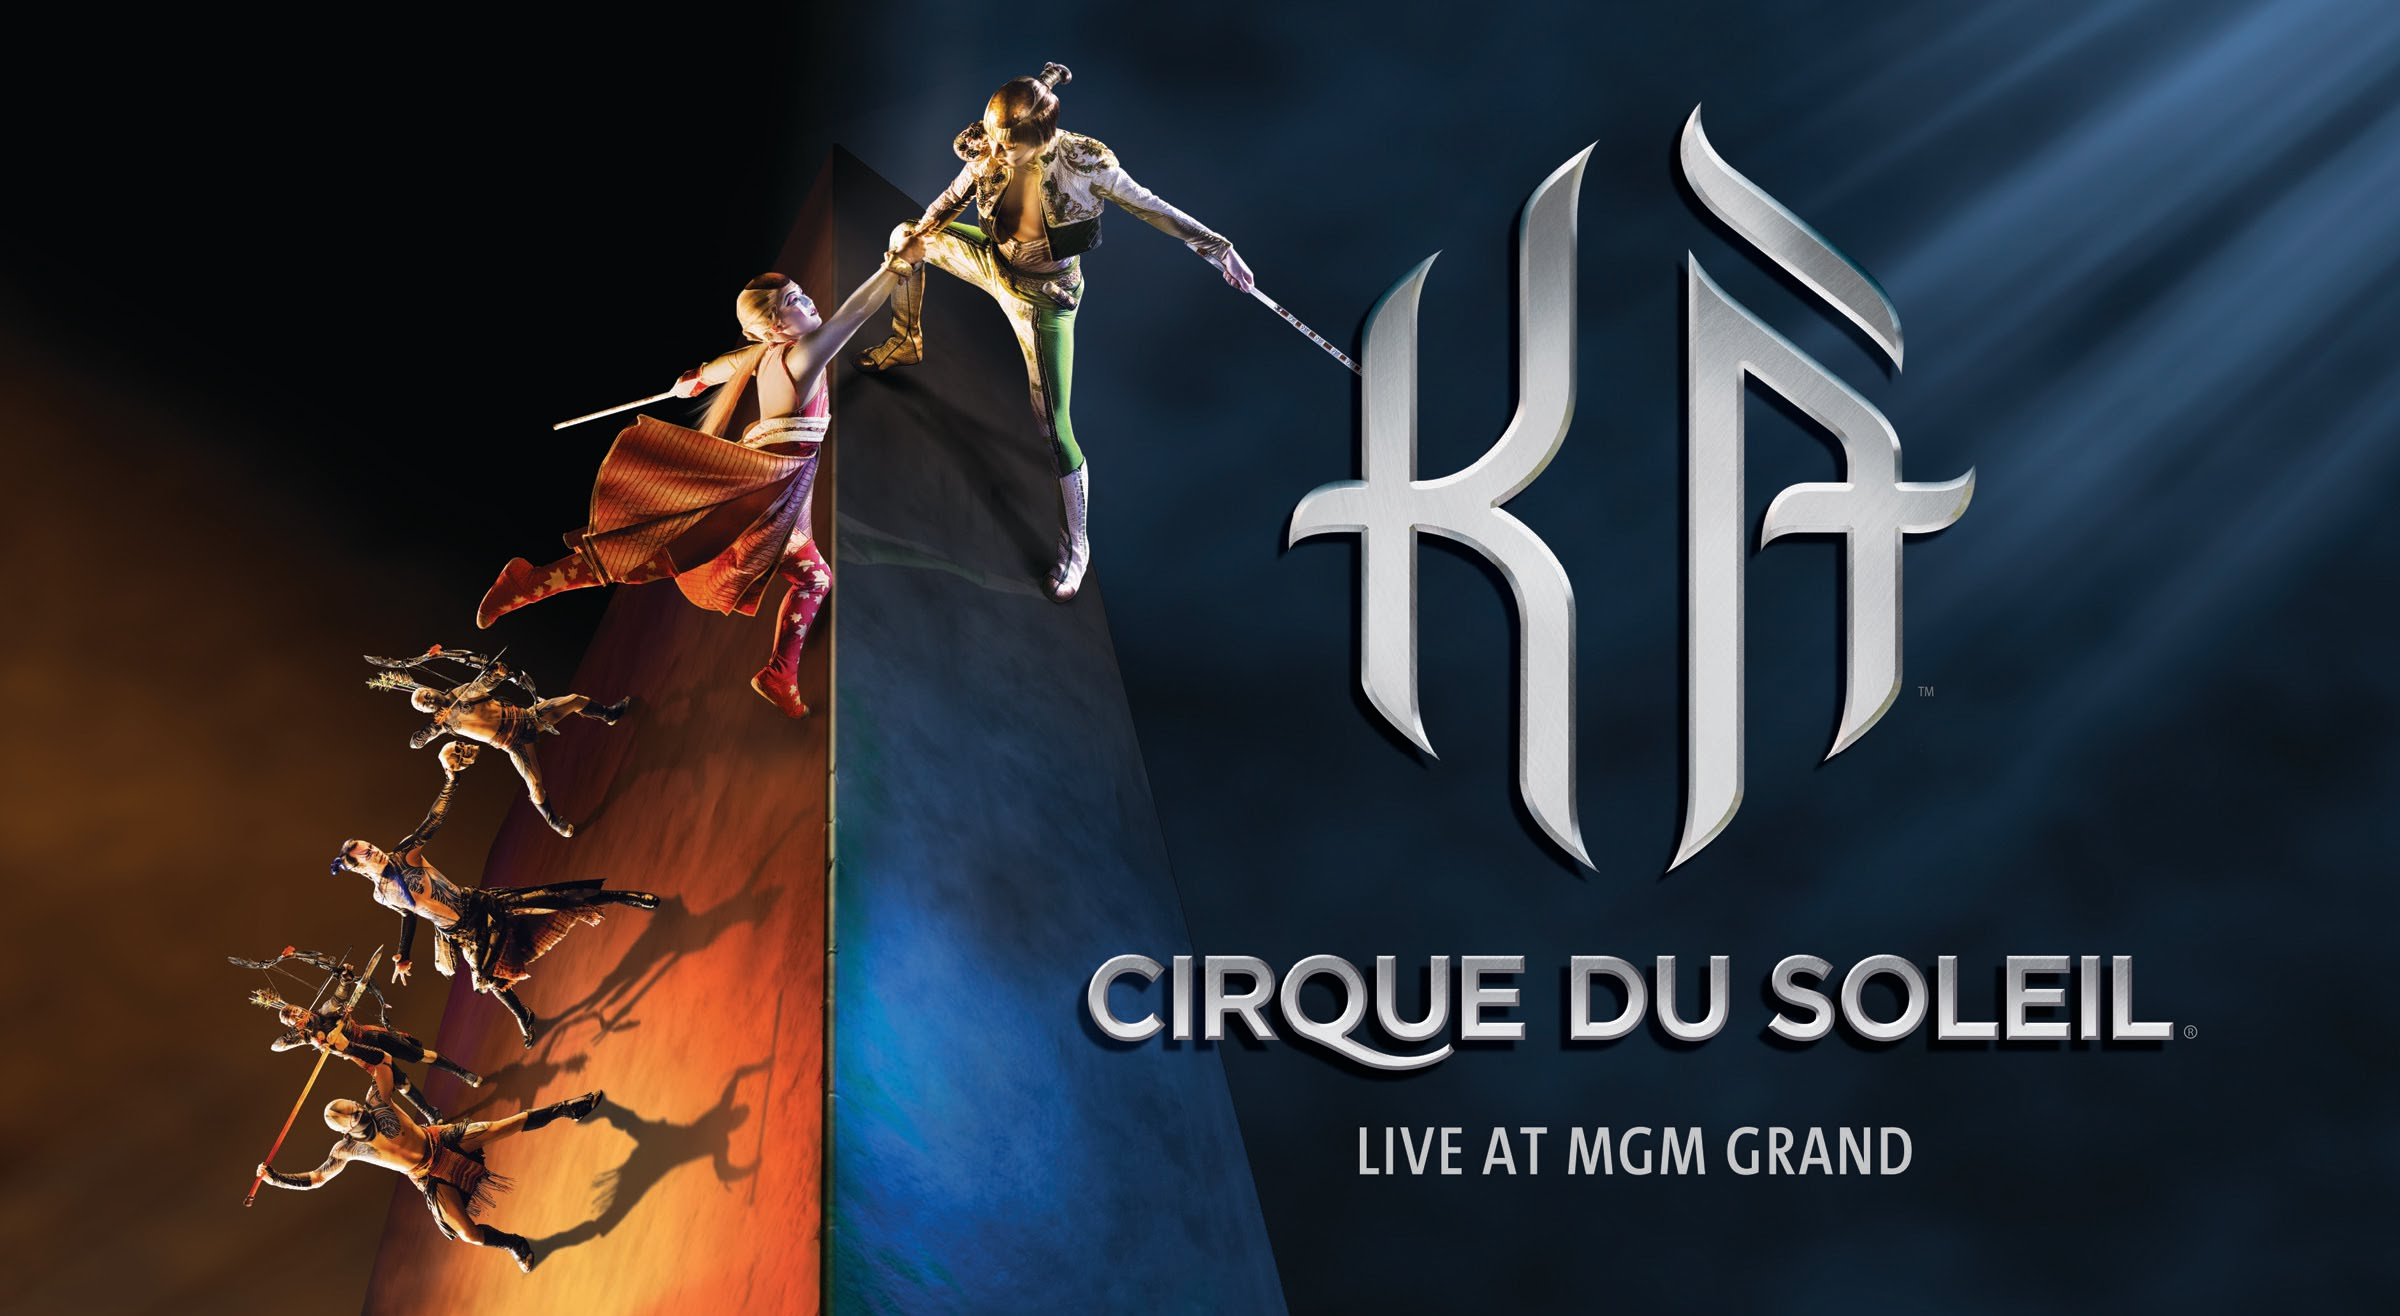 OFFERS FOR Las Vegas & surroundings. Set the excitement to high with Cirque du Soleil offers! Celebrate a big event, a get-together, a romantic outing, and more with discounts on tickets to some of the world's most captivating Cirque du Soleil shows.